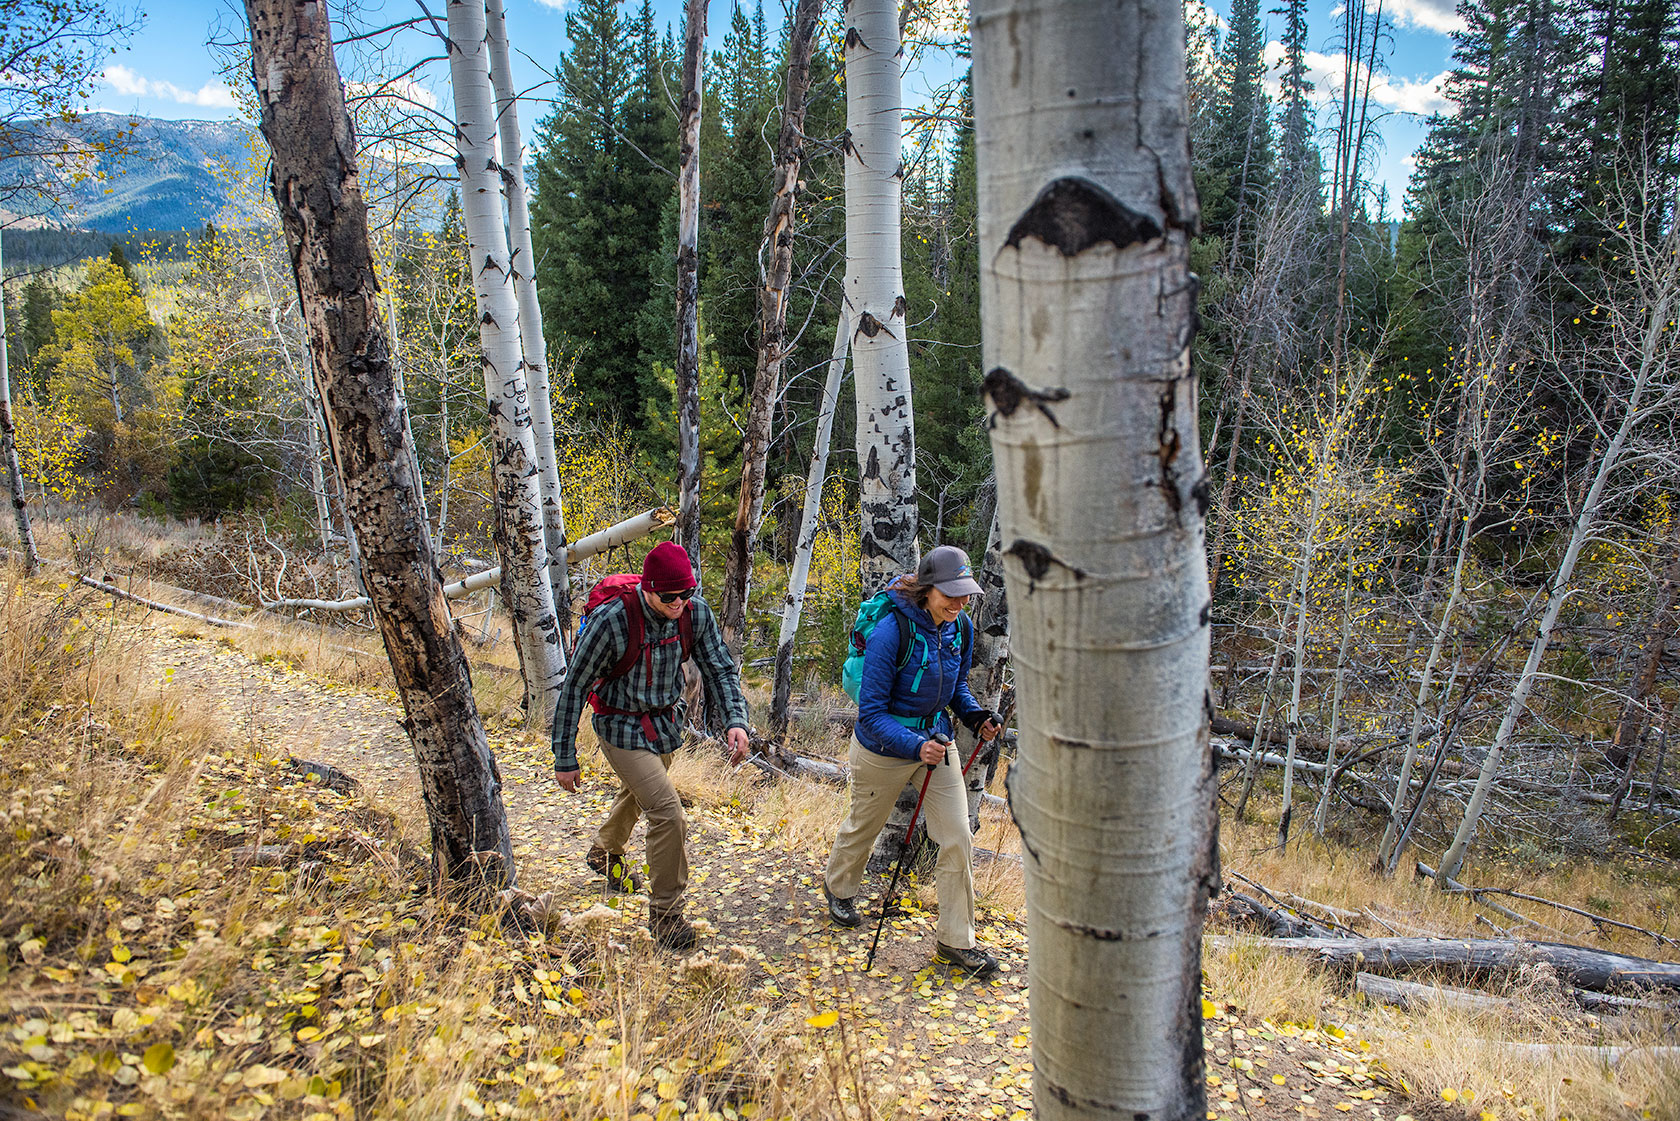 austin-trigg-patagonia-sawtooth-hiking-advenure-wilderness-forest-idaho-outside-lifestyle-day-fall-weather-mountains-aspen-grove.jpg